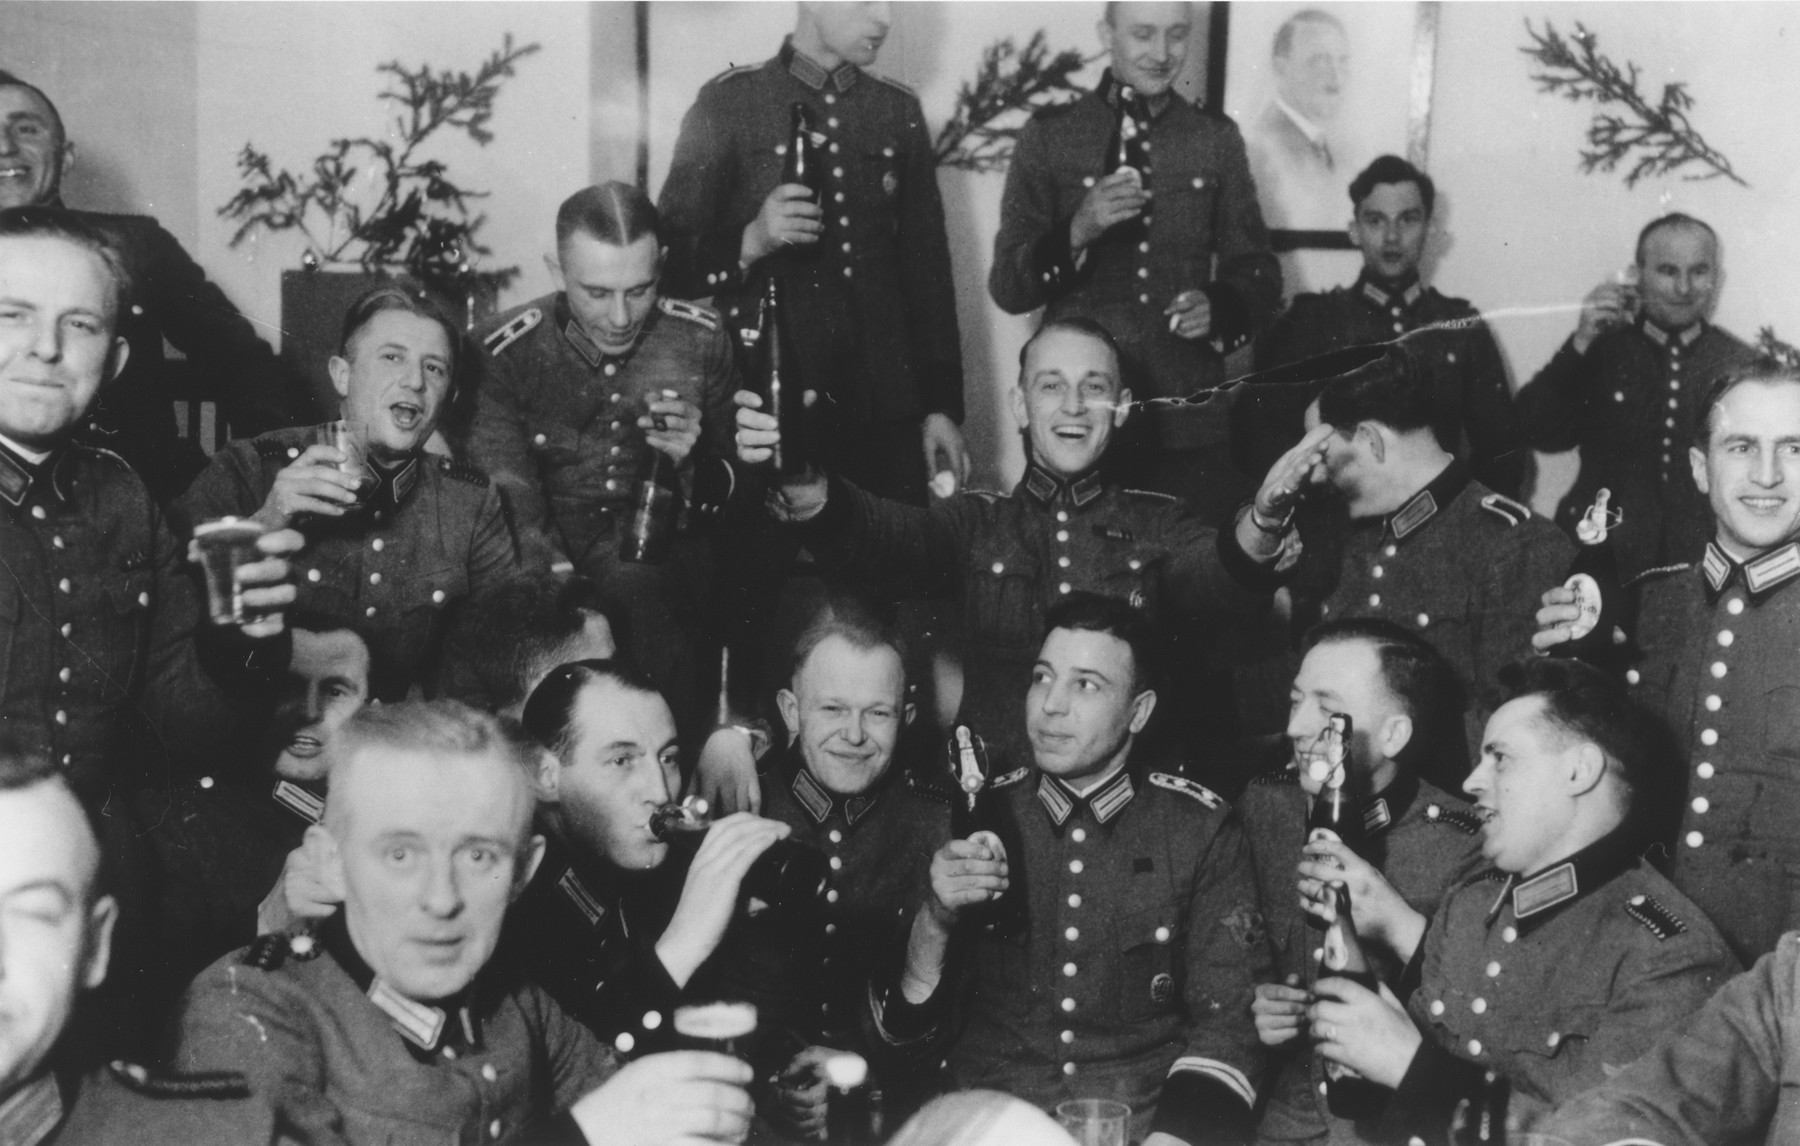 Members of Police Battalion 101 celebrate Christmas in their barracks.   One image from a photograph album belonging to a member of Police Battalion 101.